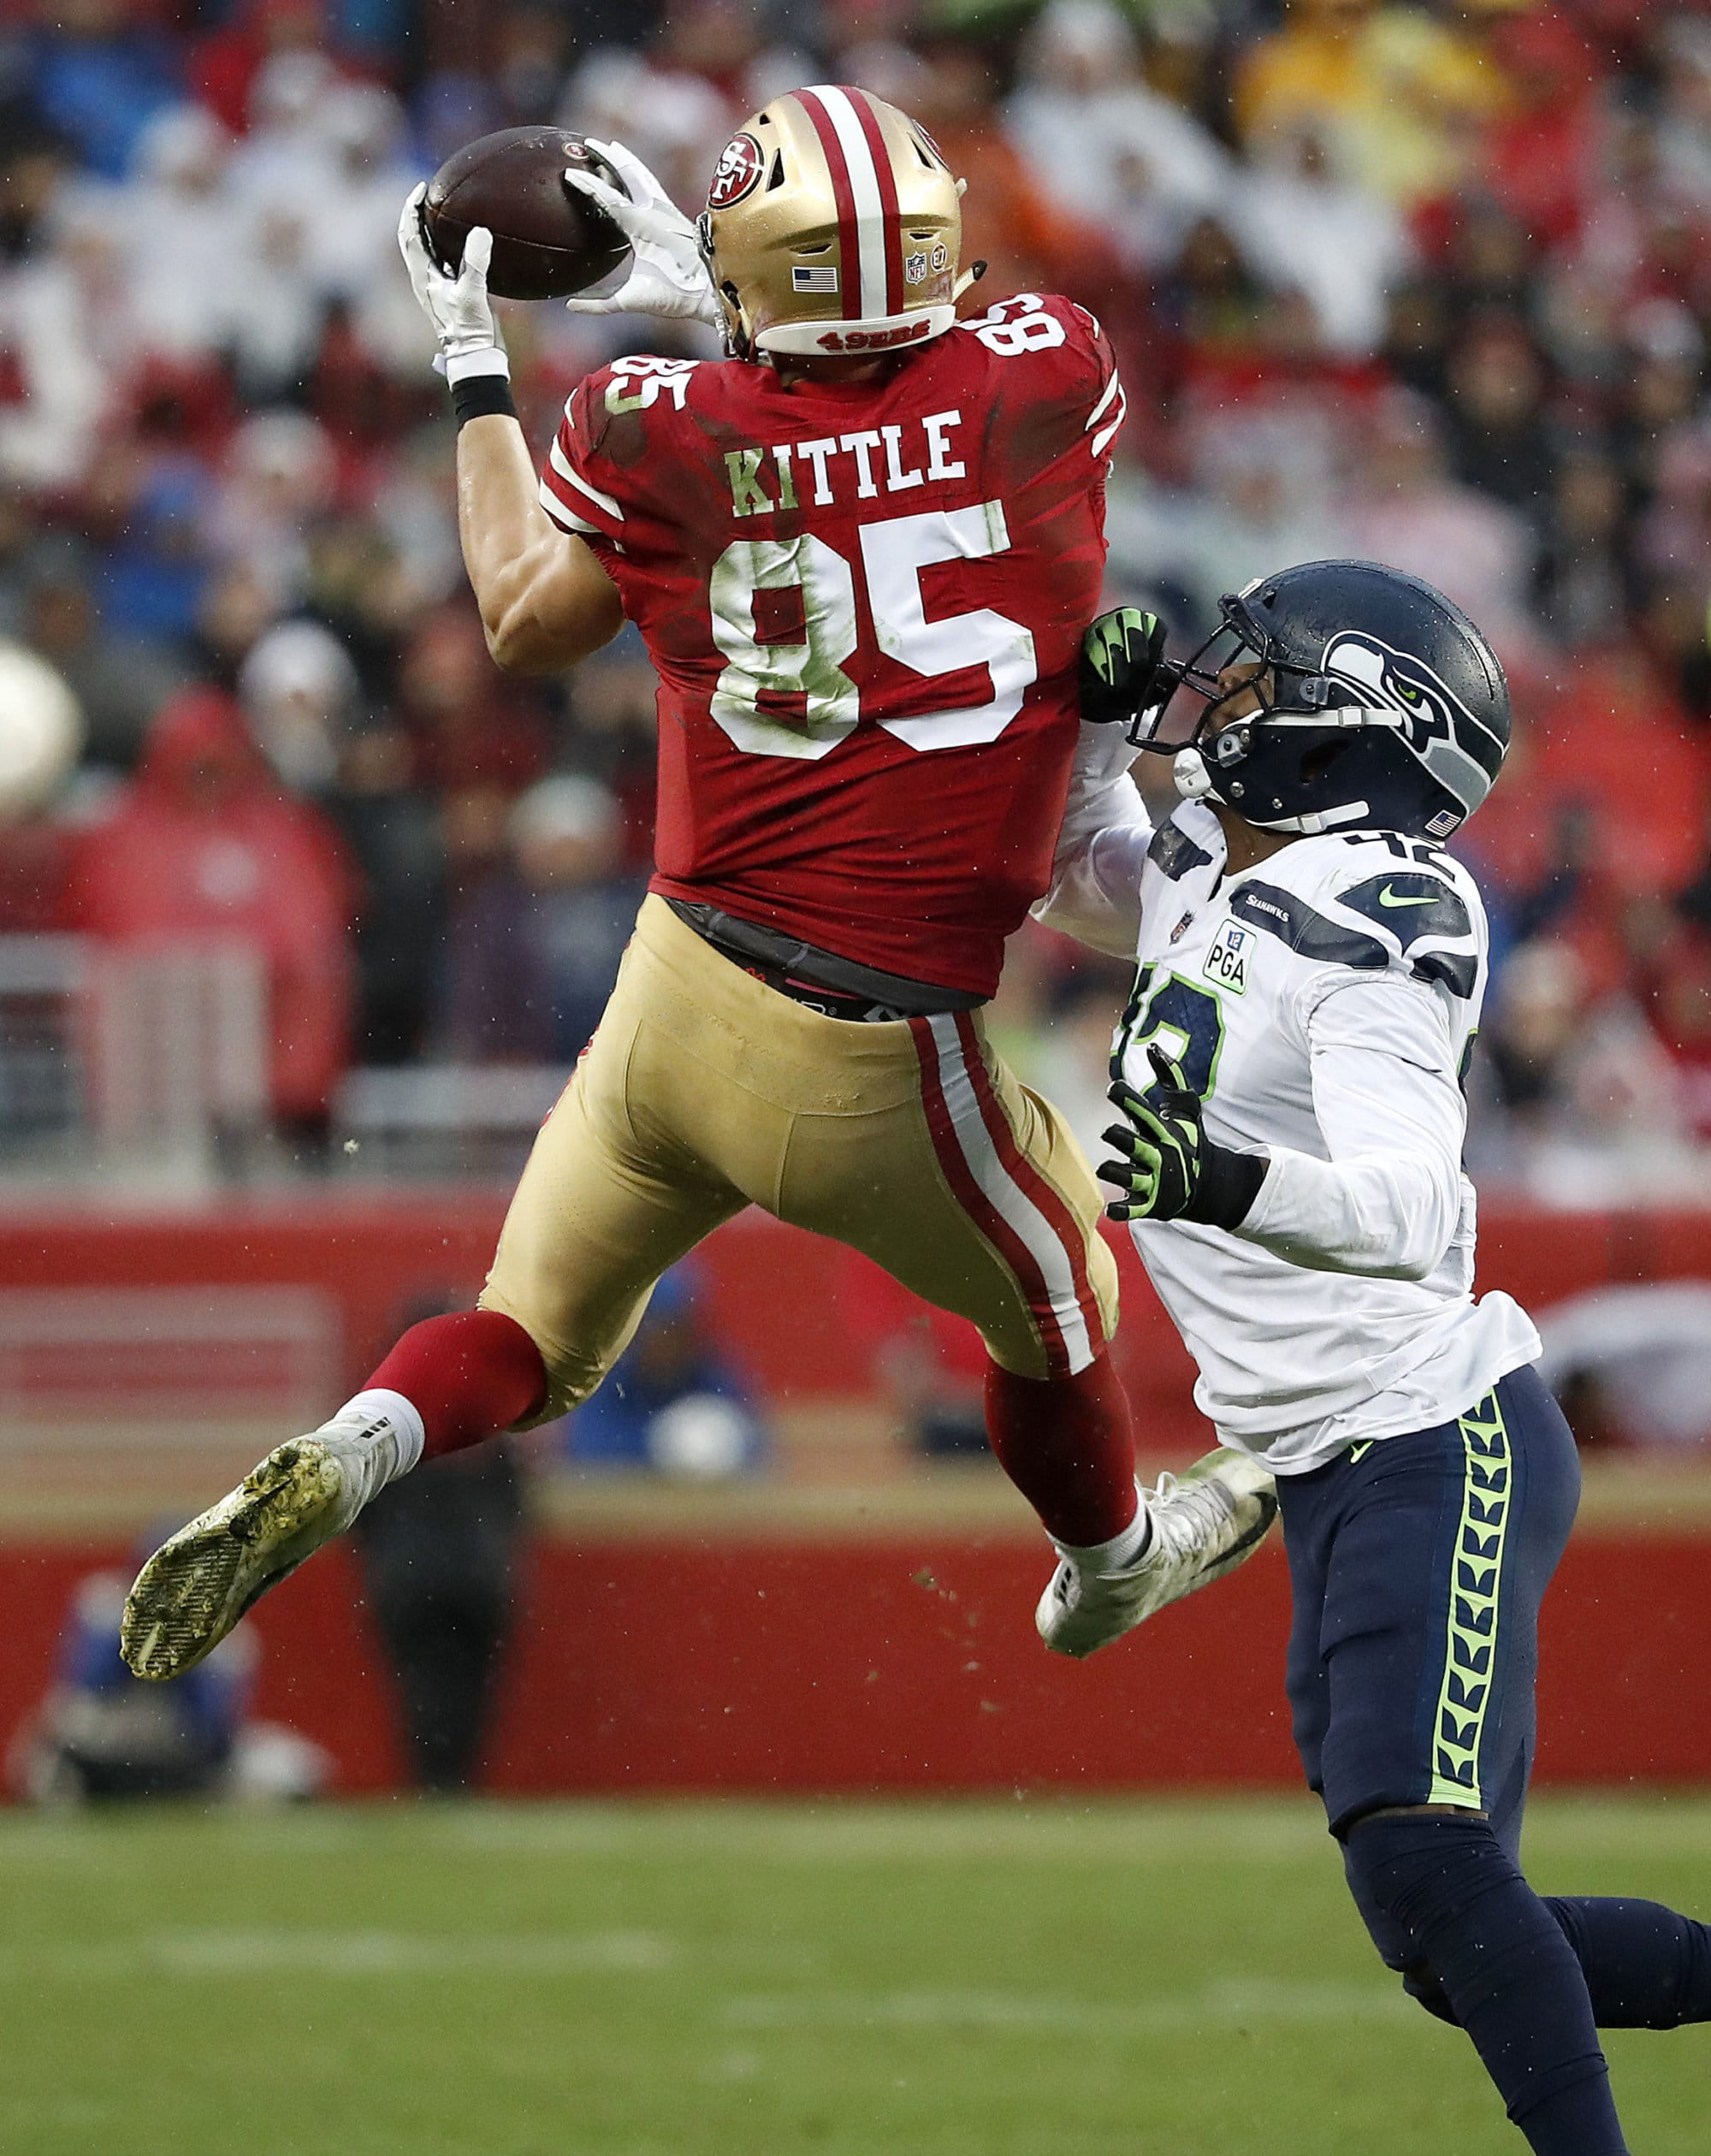 San Francisco 49ers tight end George Kittle (85) catches a pass over Seattle Seahawks defensive back Delano Hill during the second half of an NFL football game in Santa Clara, Calif., Sunday, Dec. 16, 2018. (AP Photo/Tony Avelar)